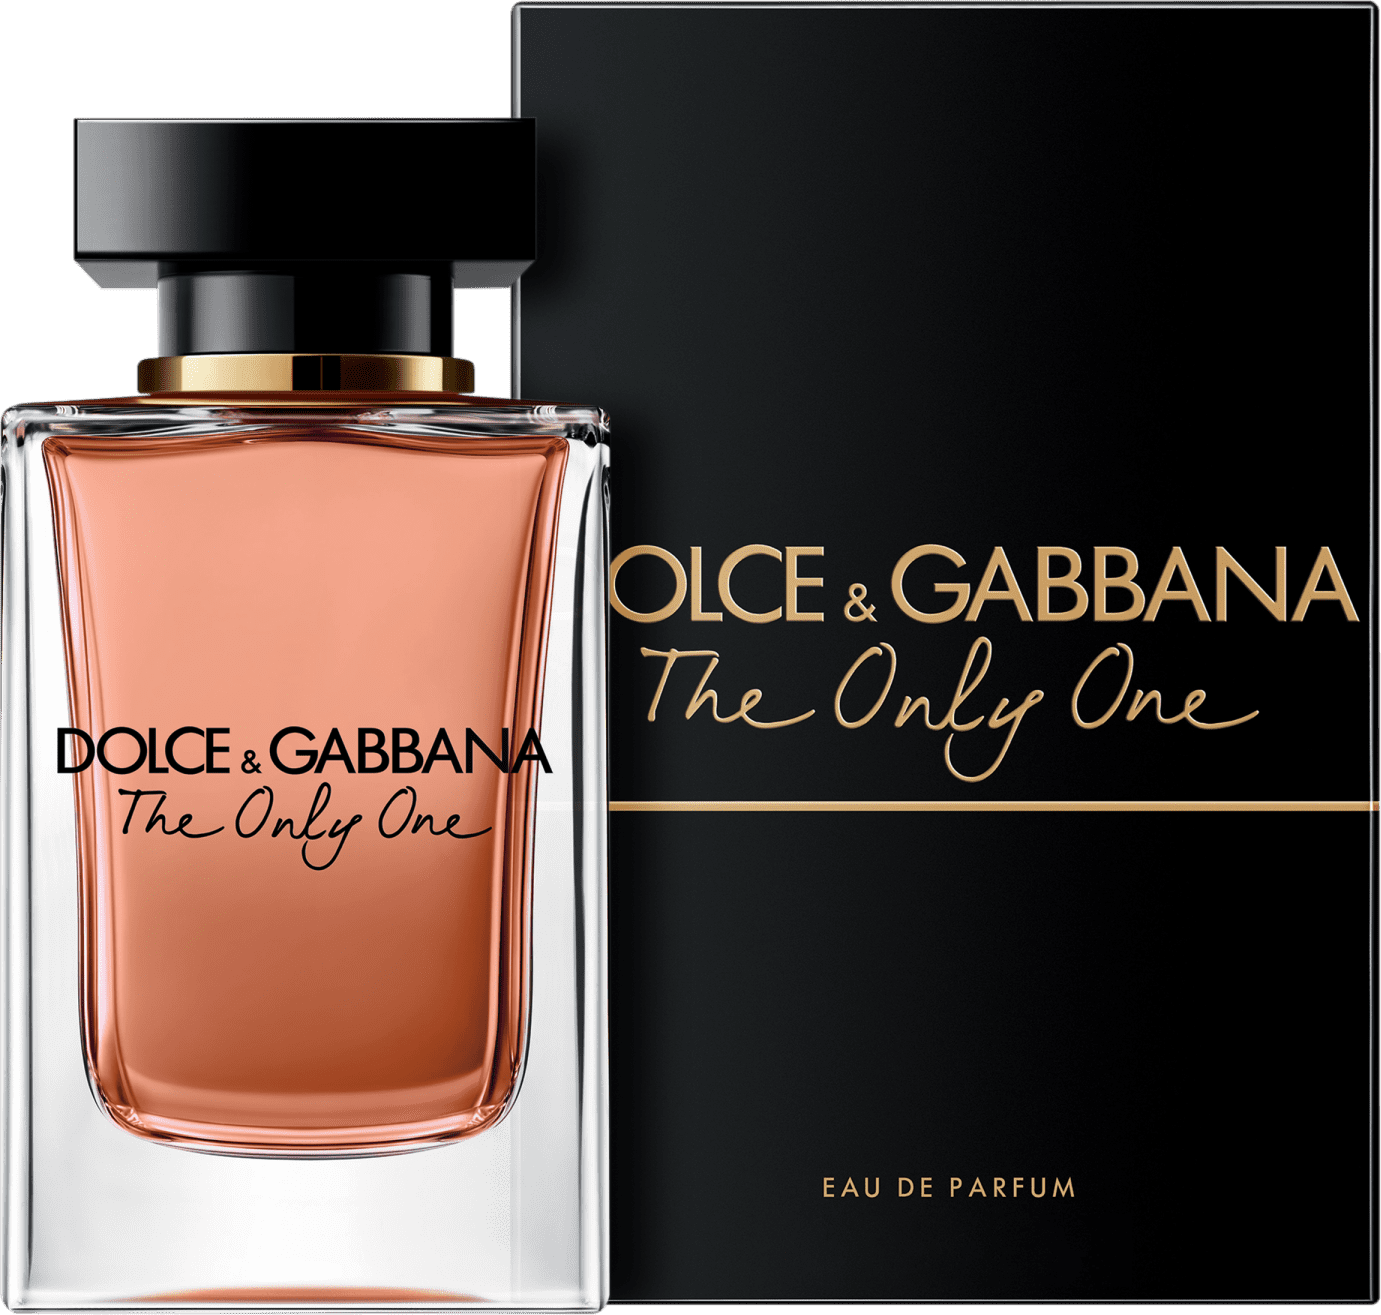 7b161813328b2 The Only One Dolce   Gabbana Eau de Parfum – Perfume Feminino 30ml